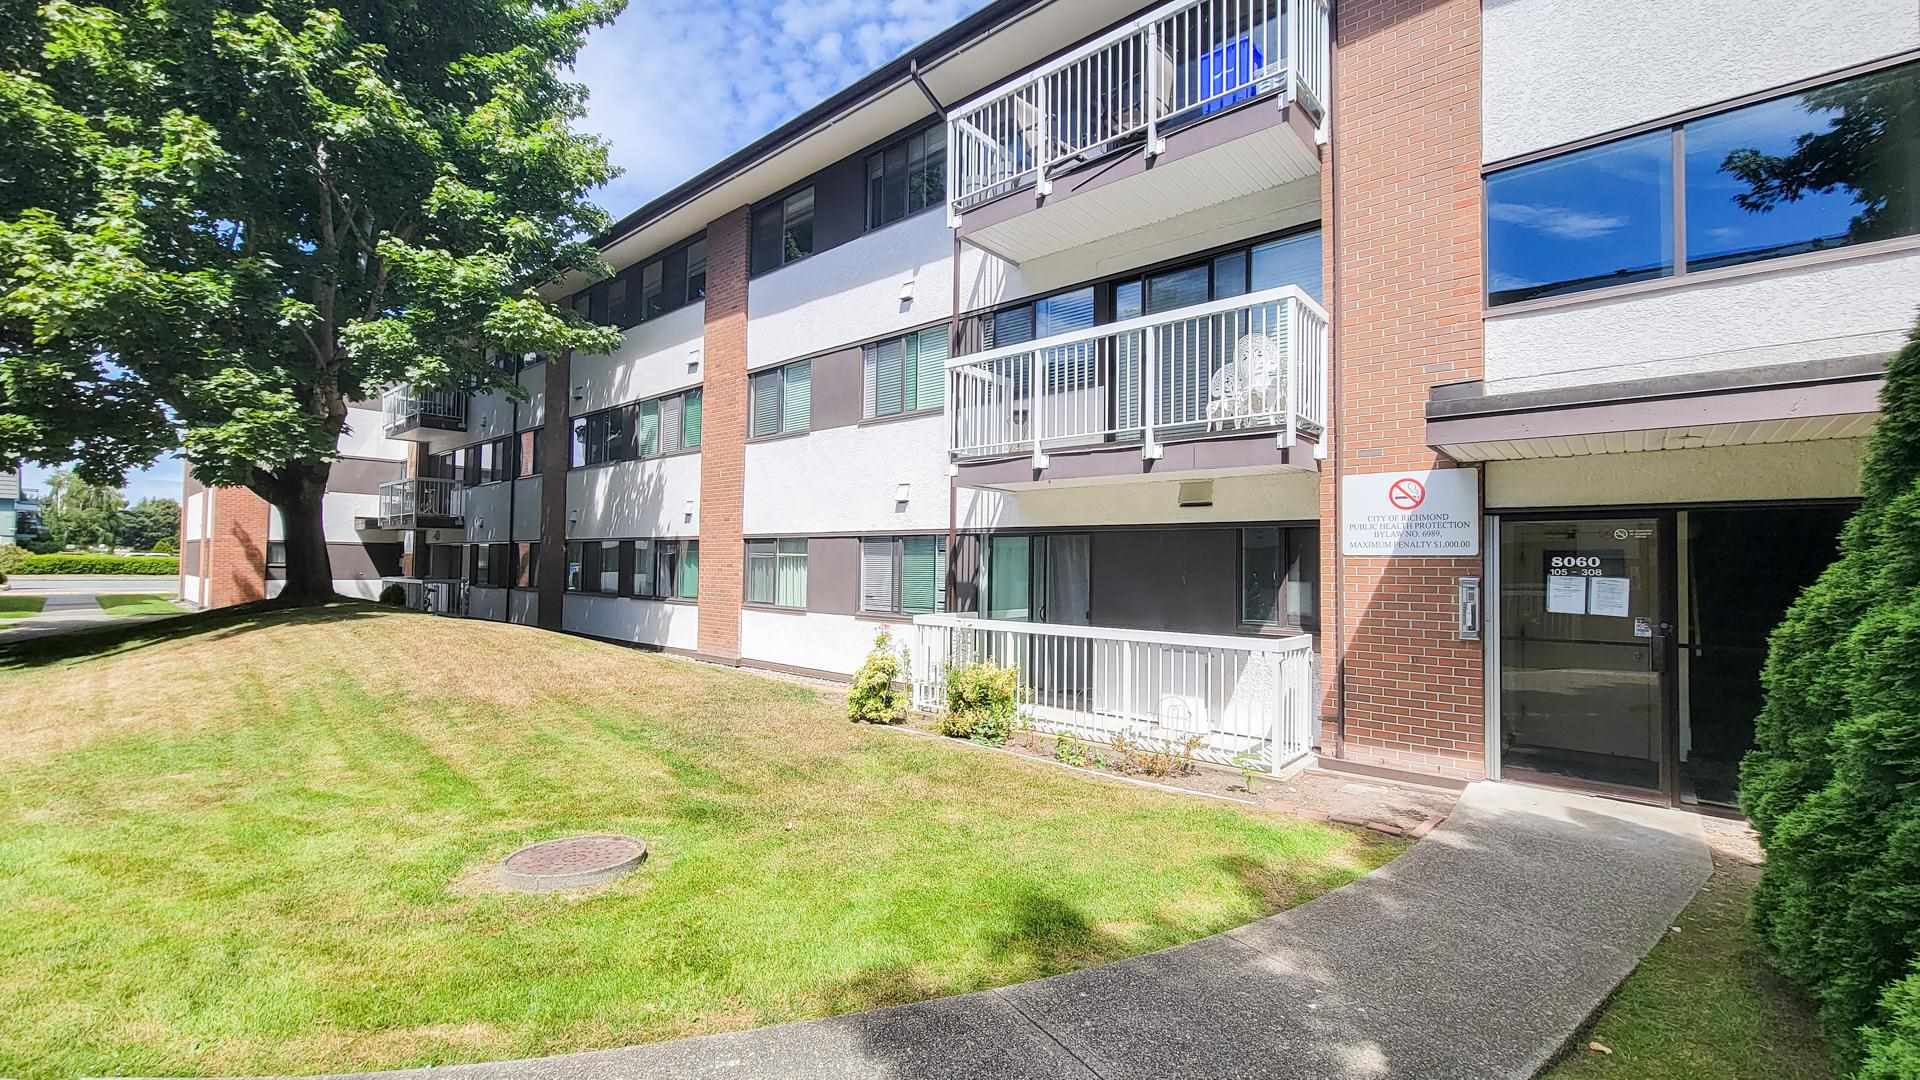 305 8060 RYAN ROAD - South Arm Apartment/Condo for sale, 3 Bedrooms (R2598569)